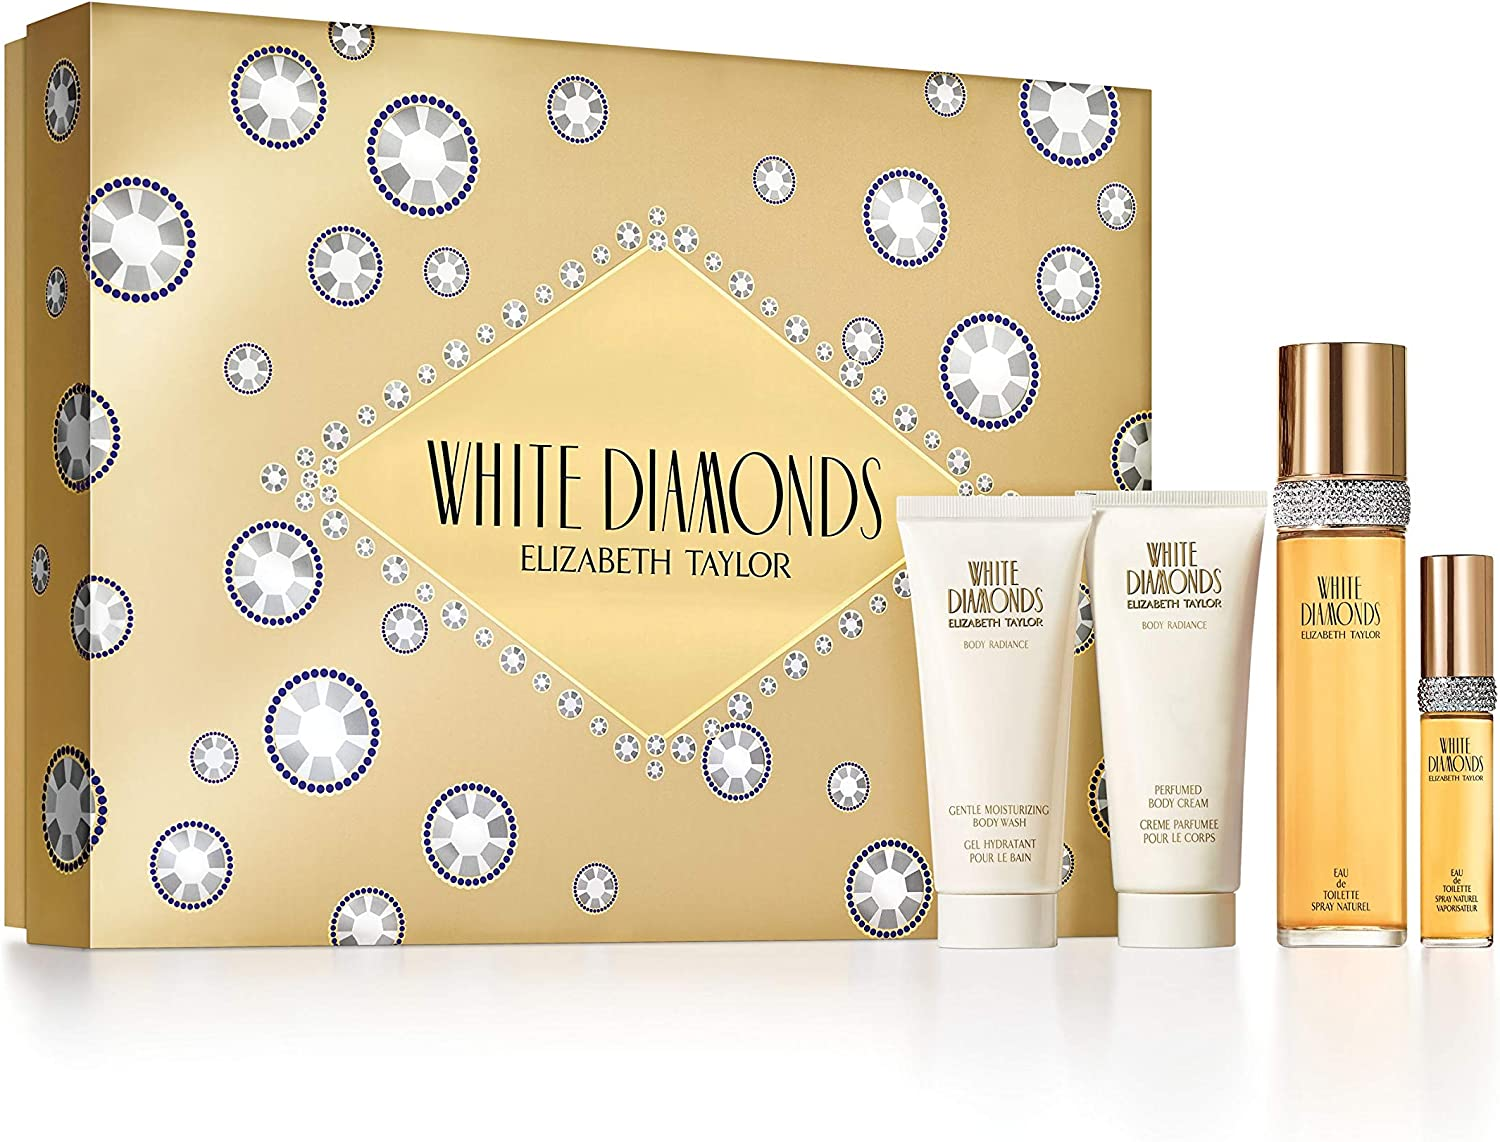 Elizabeth Taylor White Diamonds estuche Eau de Toilette 100 ml/Gel Hidratante Baño 100 ml/leche (aroma de cuerpo 100 ml/Eau de Toilette 10 ml: Amazon.es: Belleza